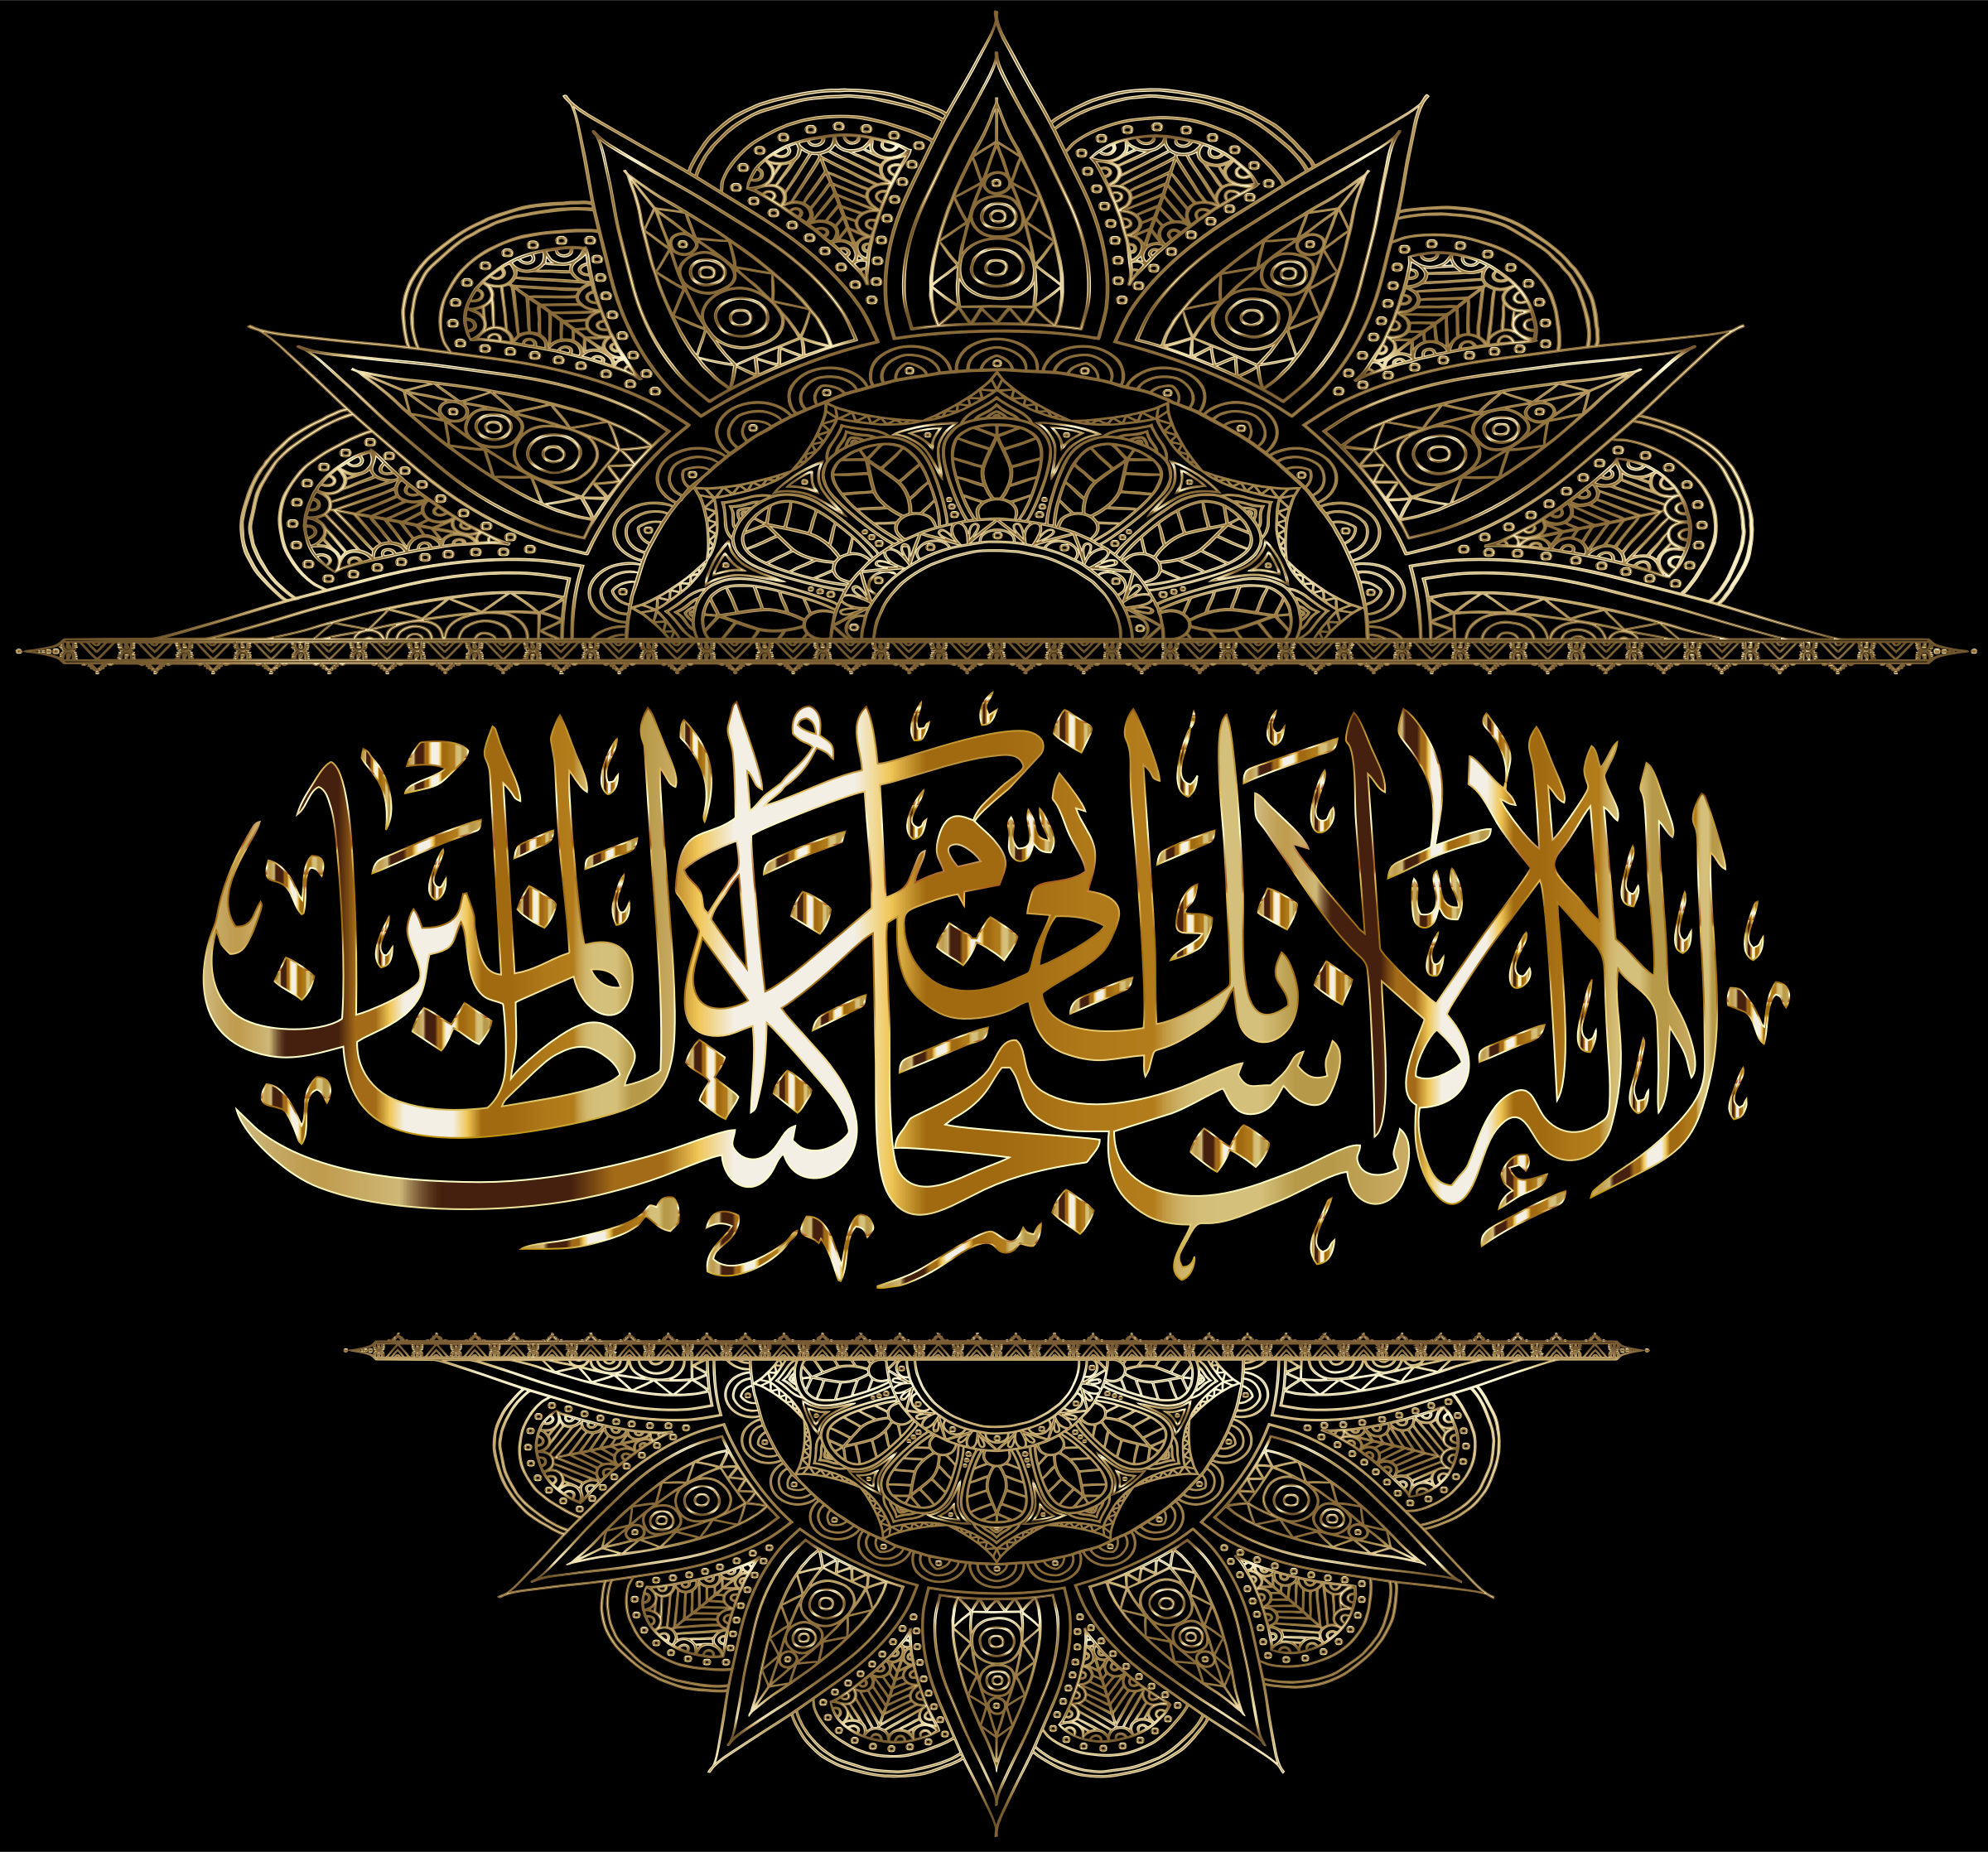 Gold Ornate Islamic Calligraphy by GDJ